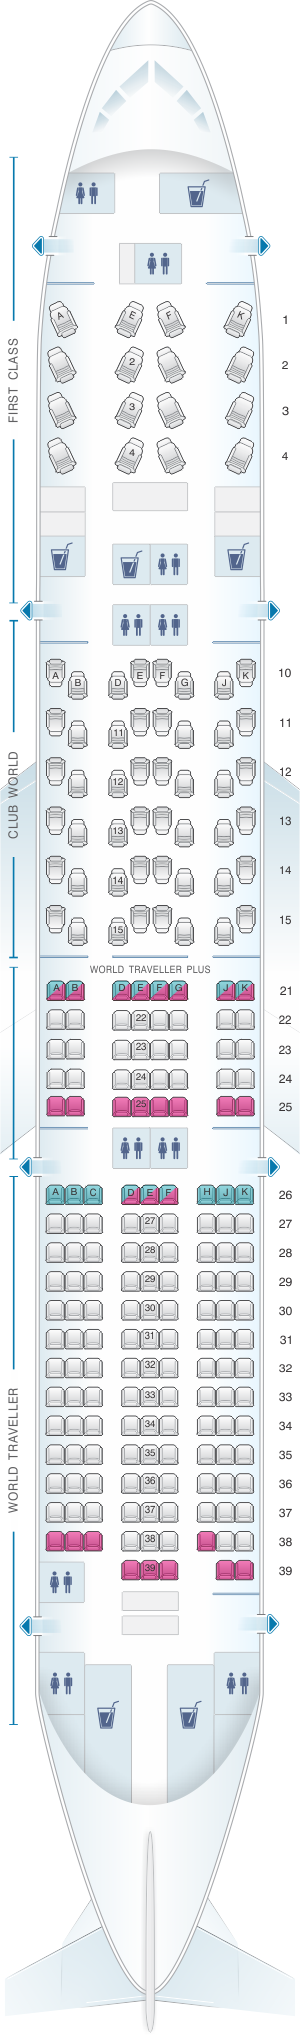 Seat map for British Airways Boeing B777 200 four class